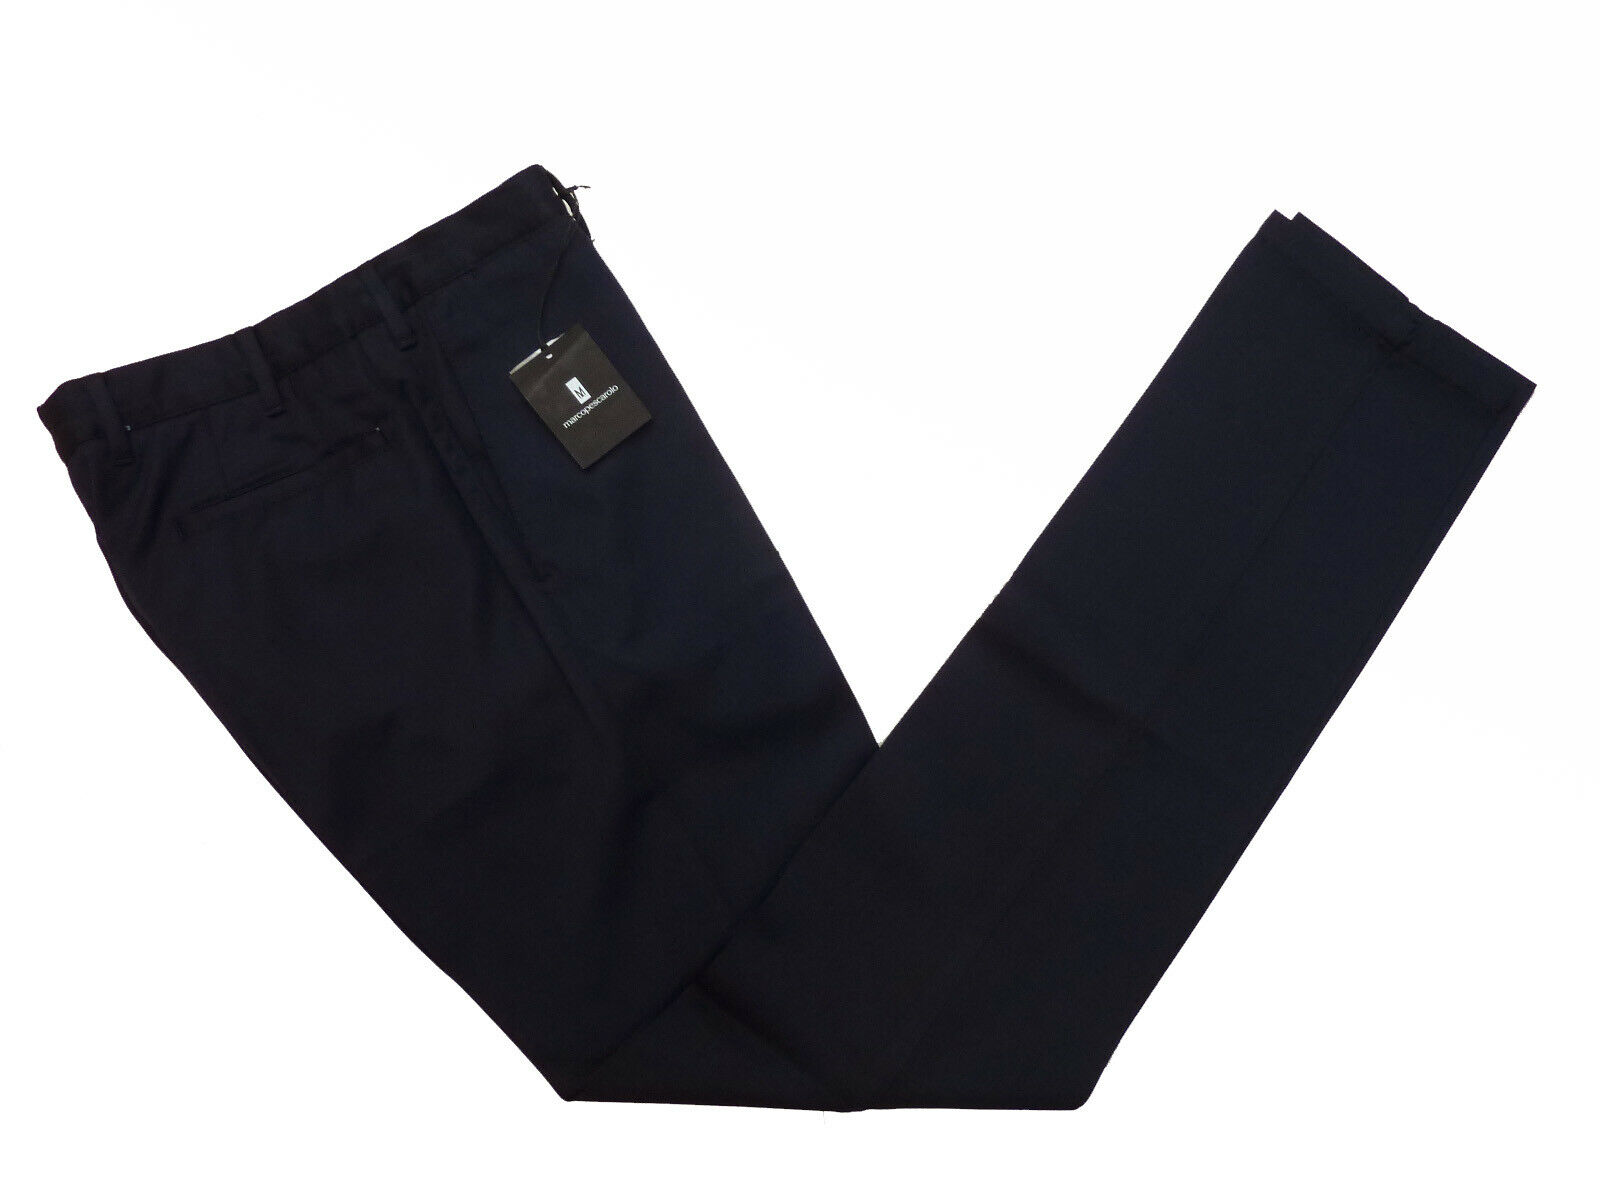 Marco Pescarolo Trousers  30  Washed navy bluee, flat front, washed wool